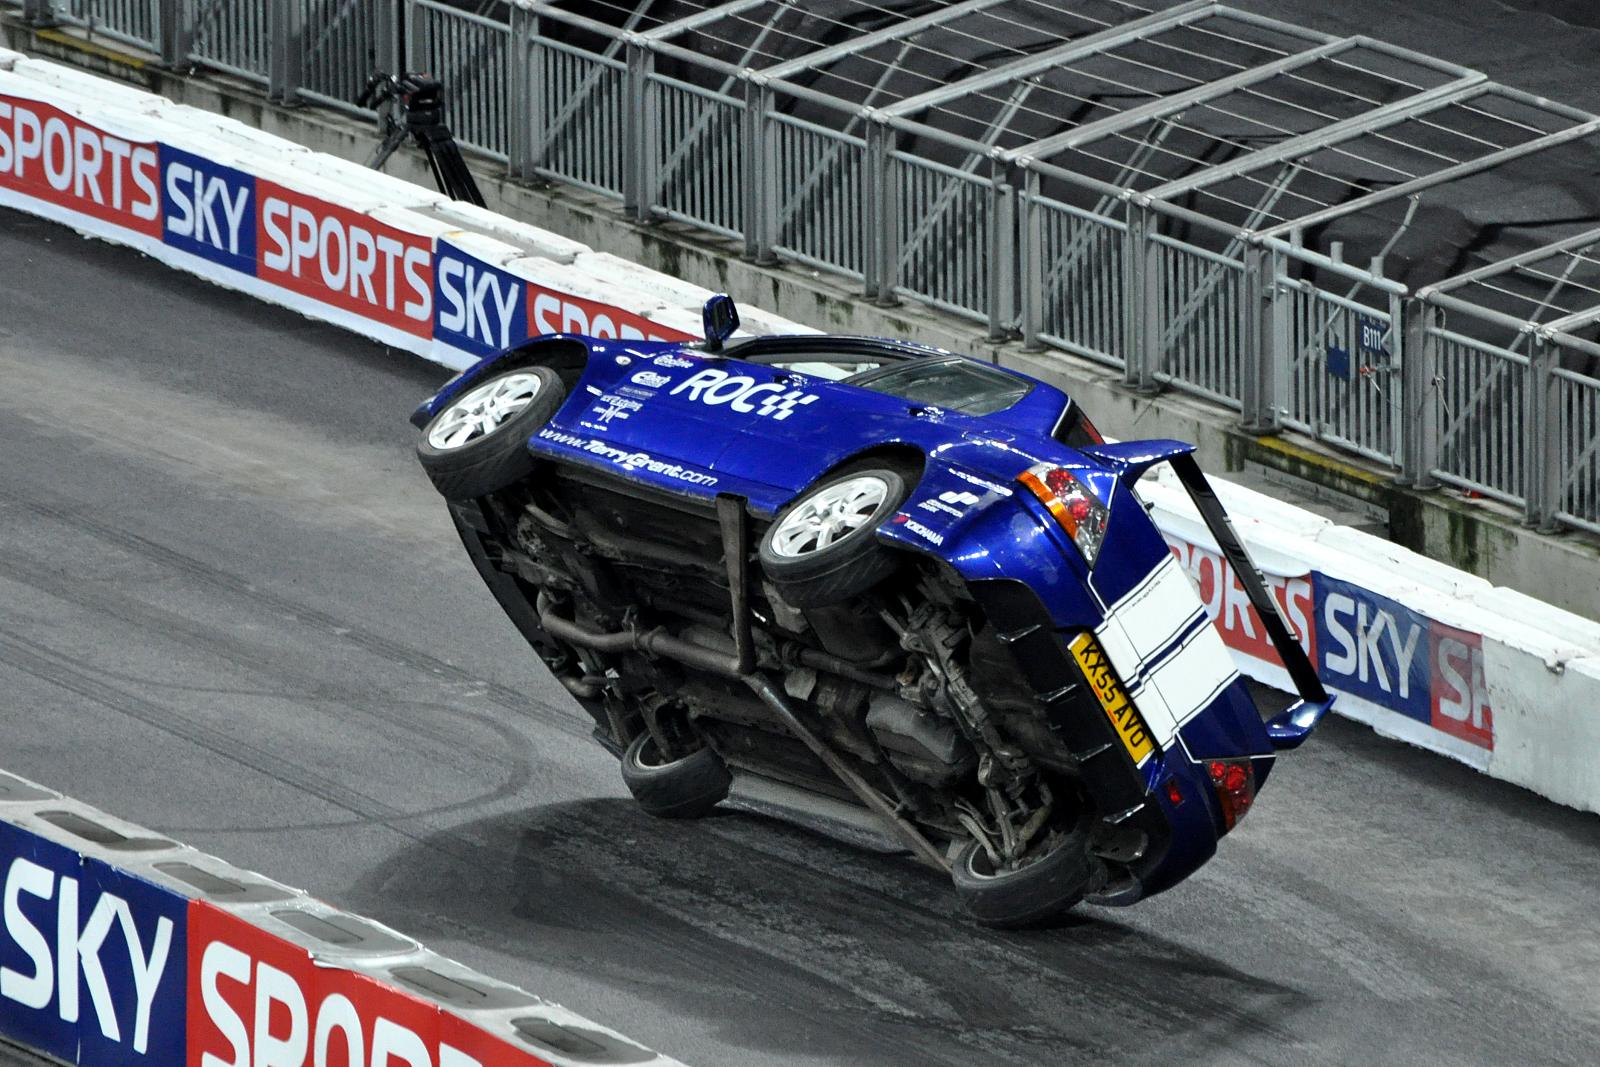 http://upload.wikimedia.org/wikipedia/commons/8/8c/Lancer_Evo_ski_stunt.jpg